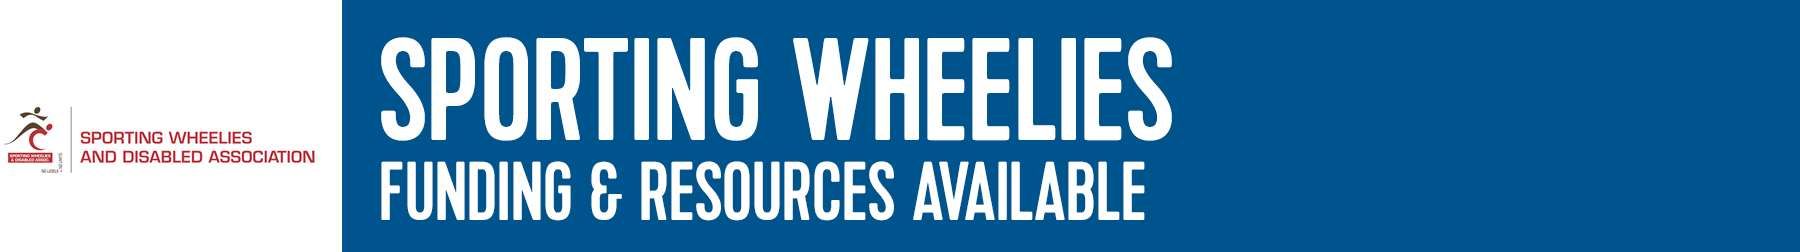 Sporting Wheelies Resources